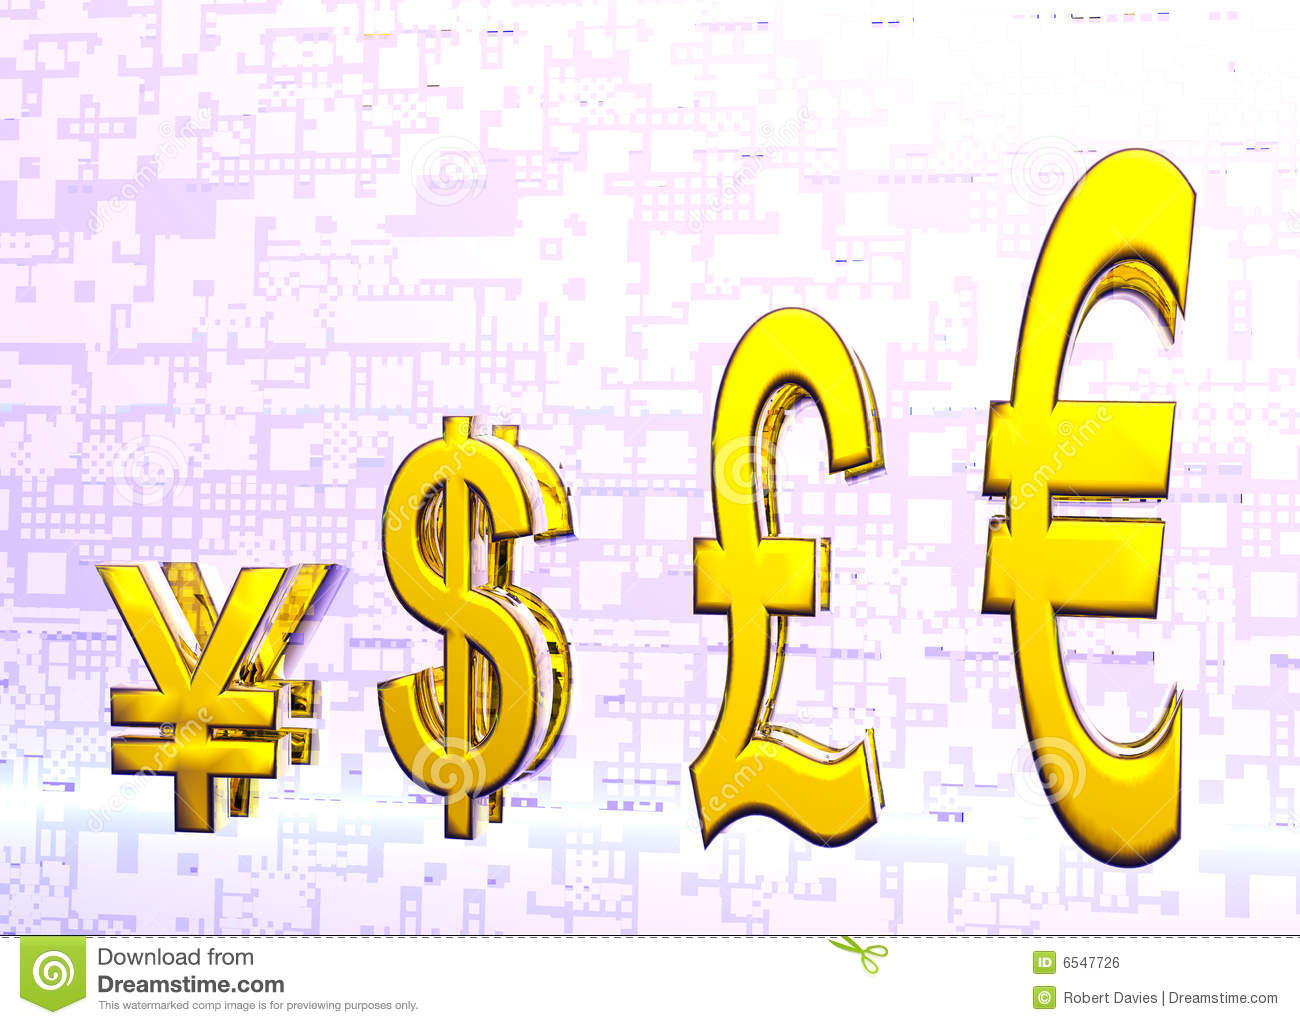 Symbol of euro and pound buffalofix19 if you are experiencing a similar issue please ask a related questionpound symbol pound money icon gbp currency symbol vector illustration buycottarizona Choice Image